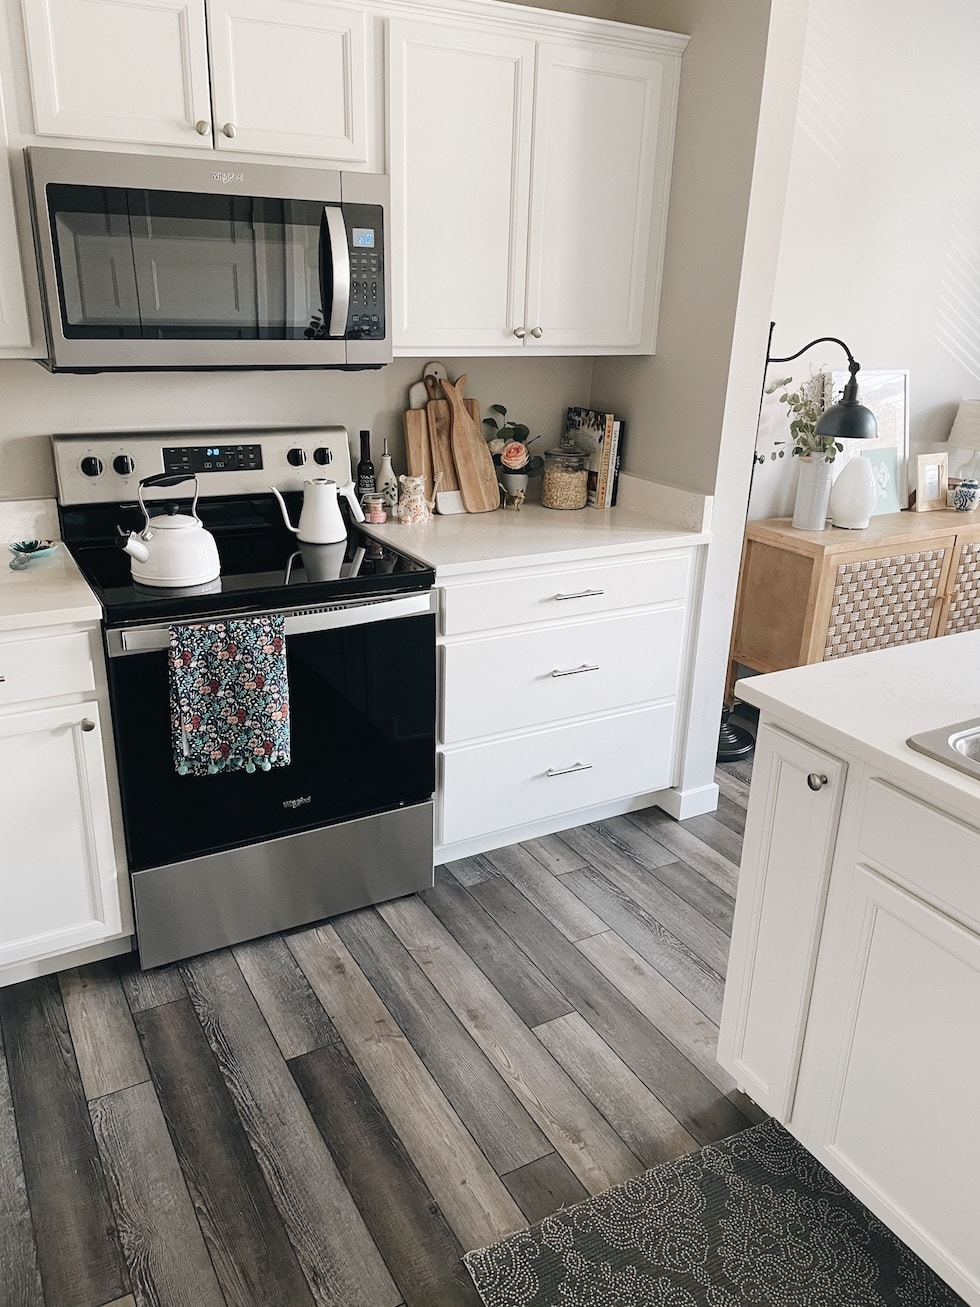 Courtney's Apartment Update + Tour (500 Square Feet!)